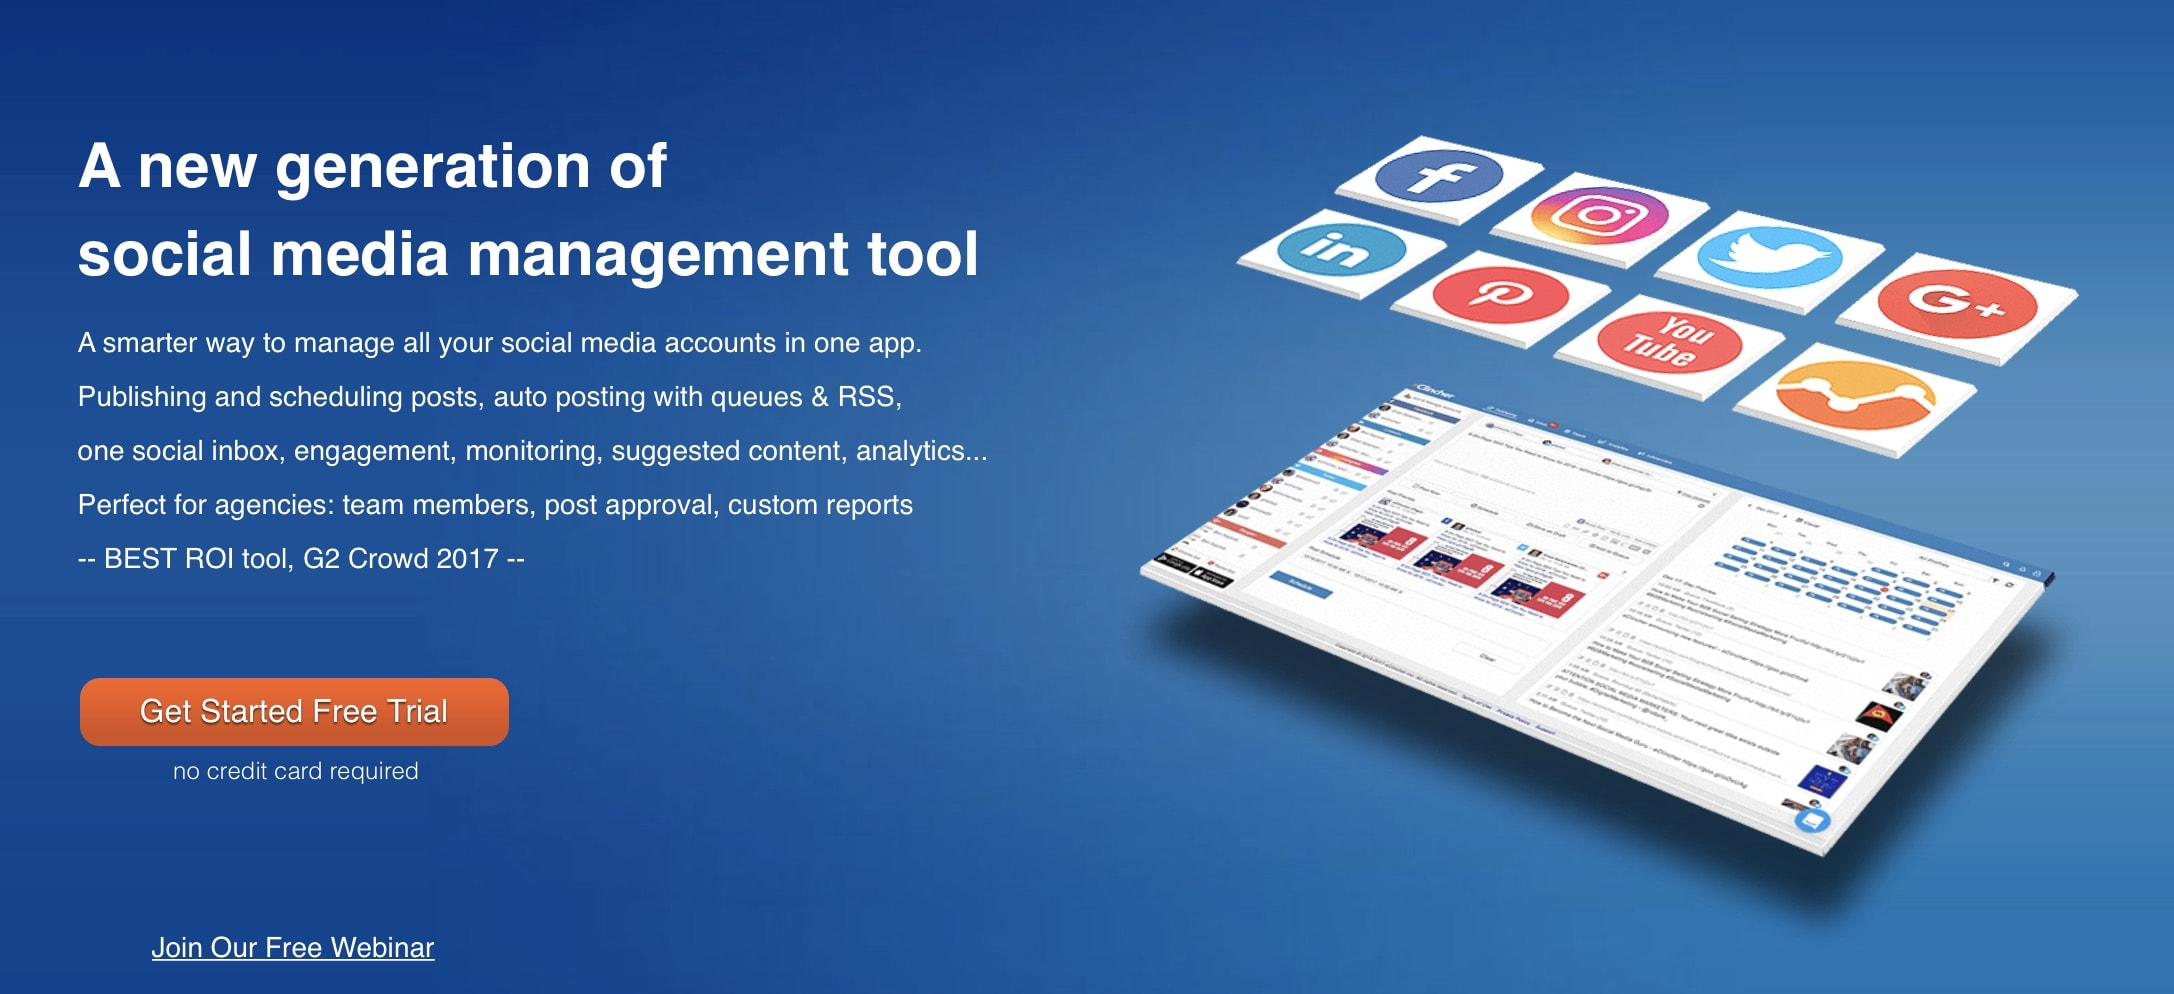 eClincher, best social media management tool - eClincher